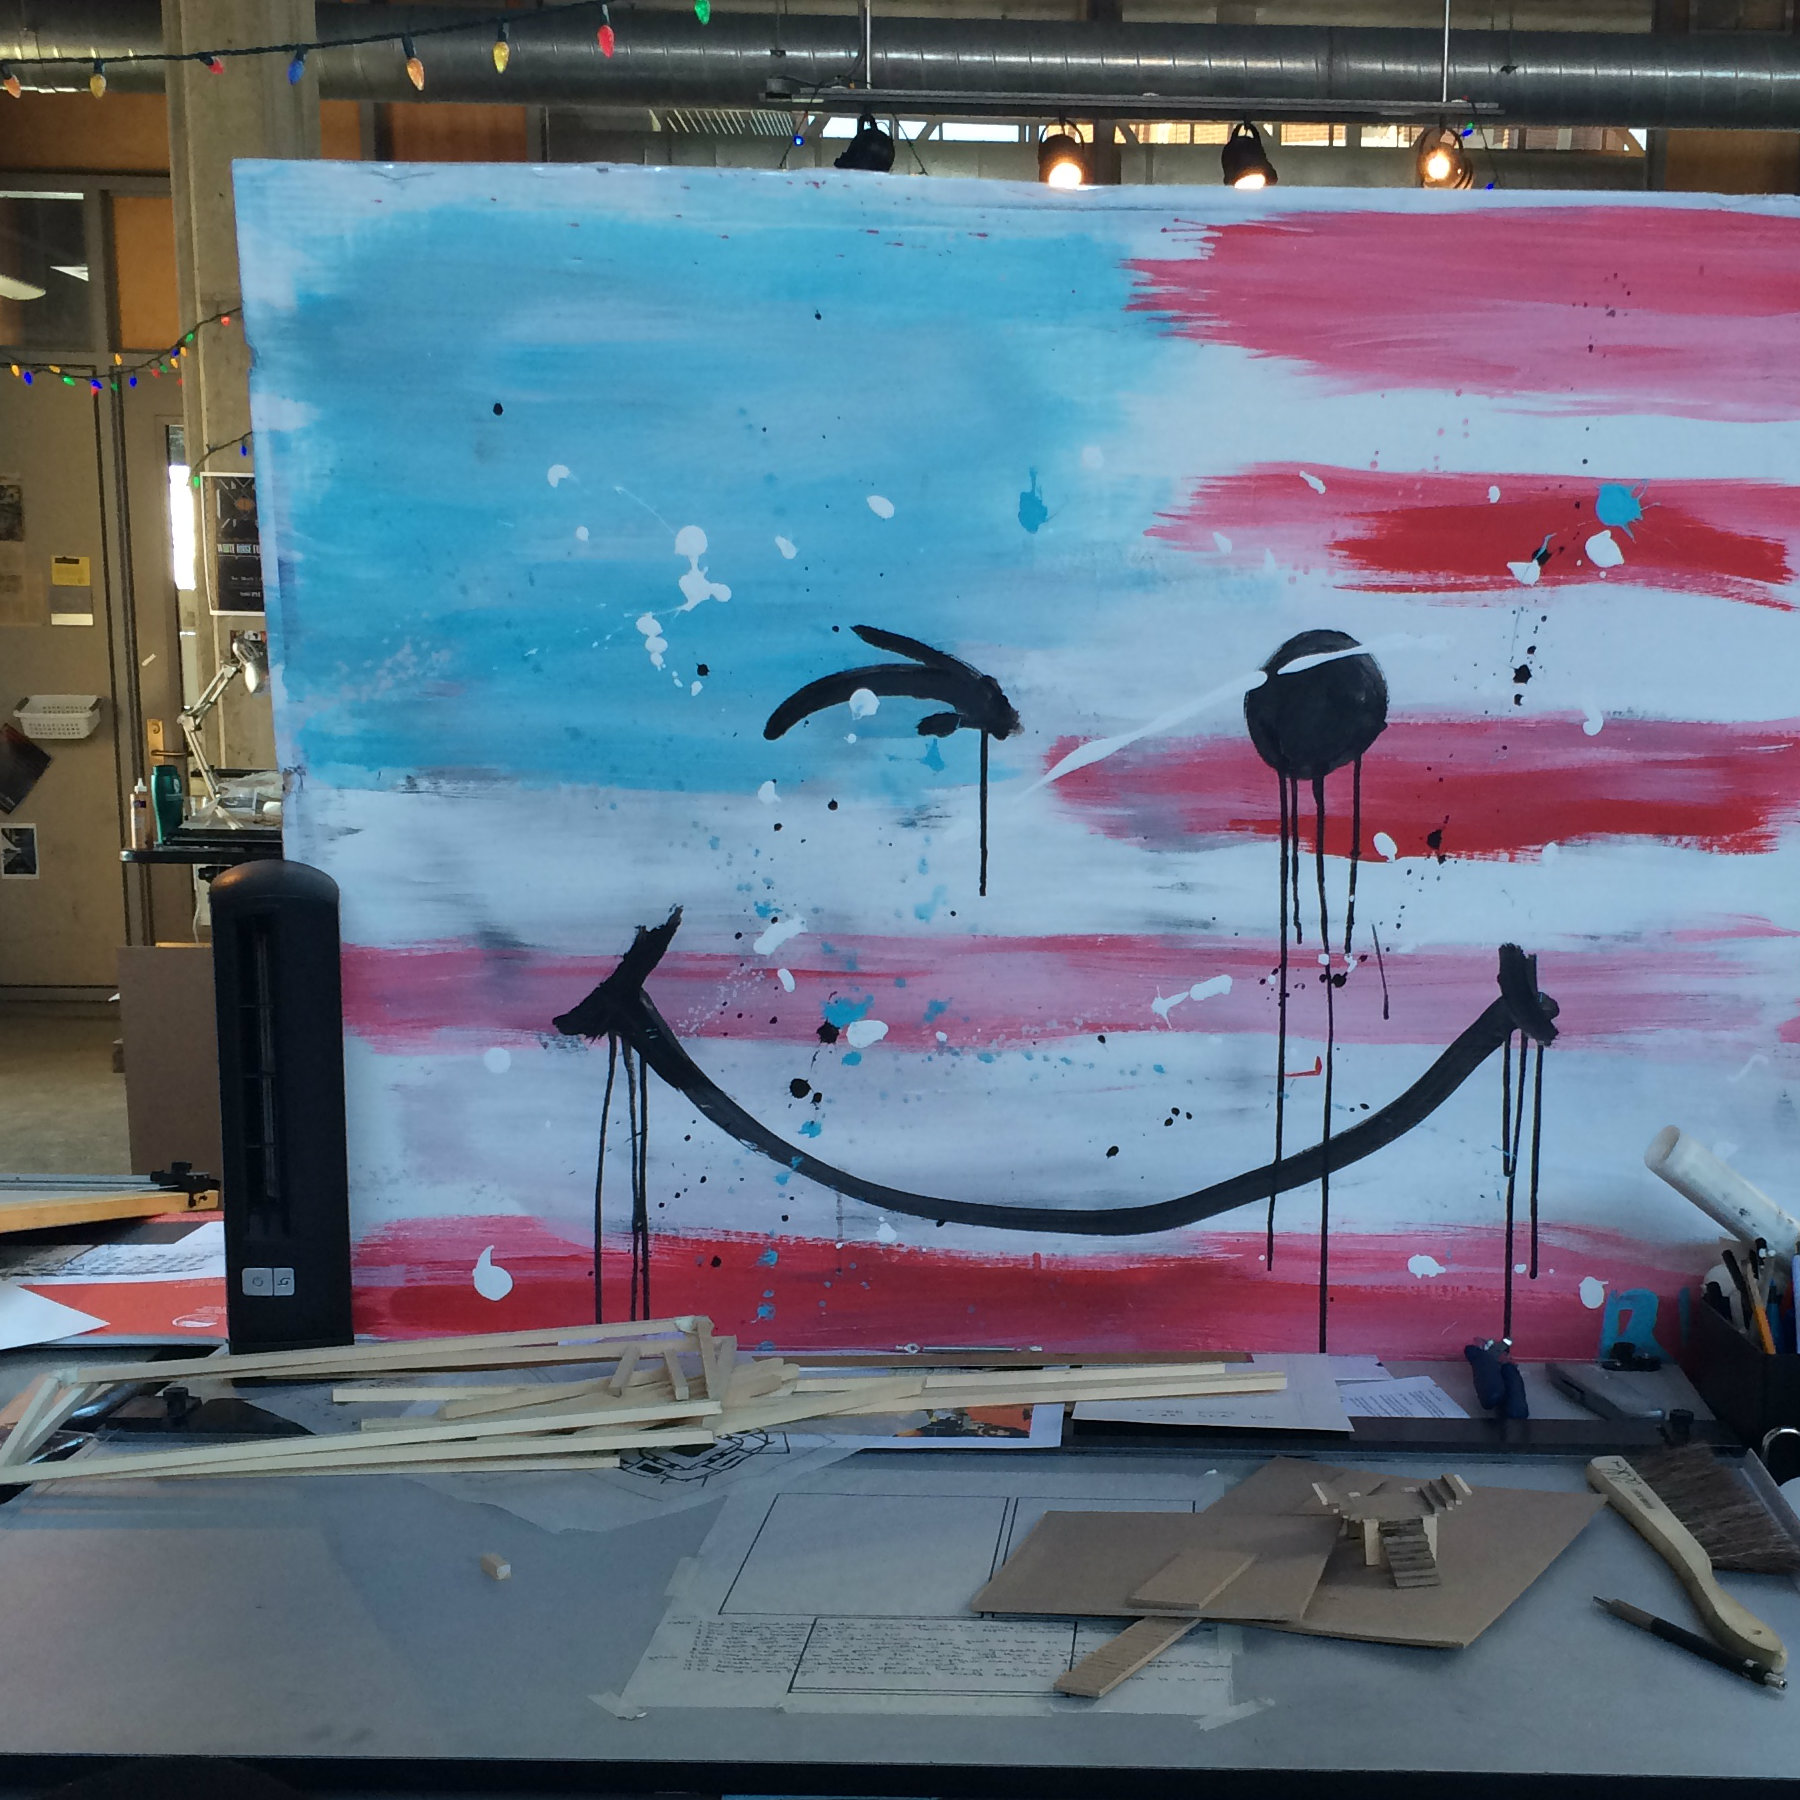 painting of an American flag with a smiley face